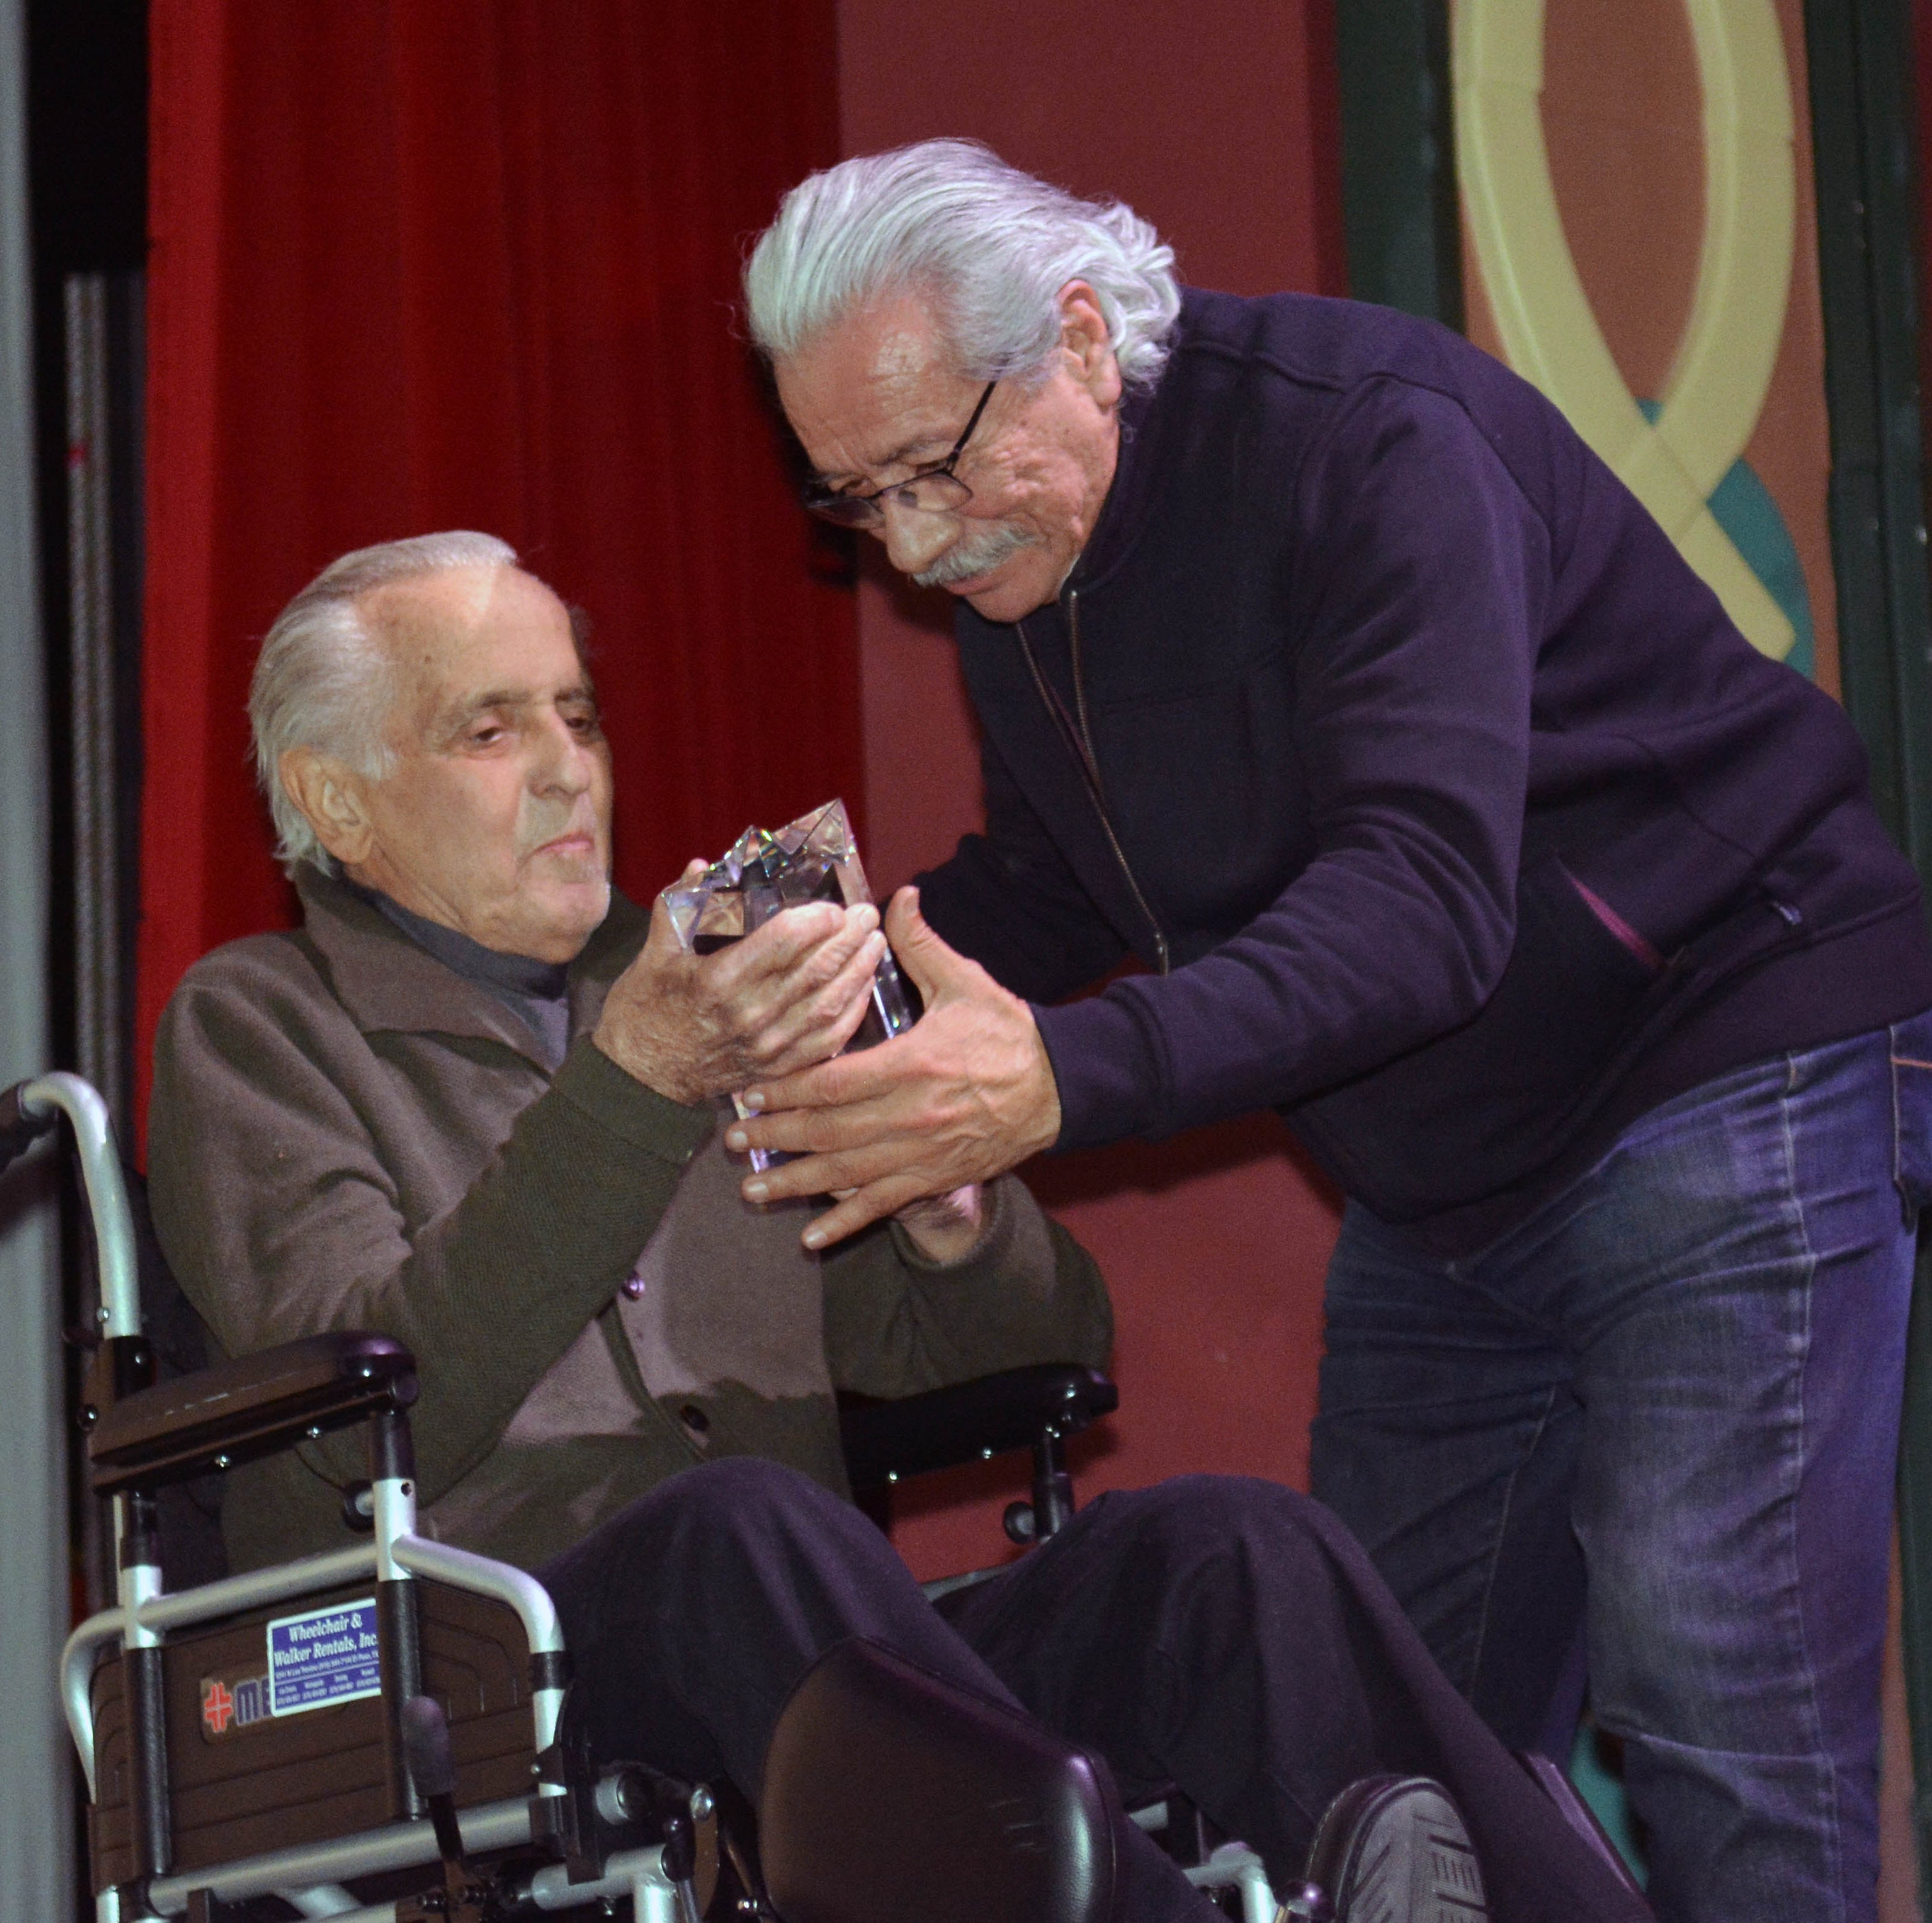 Edward James Olmos honored at Las Cruces film fest